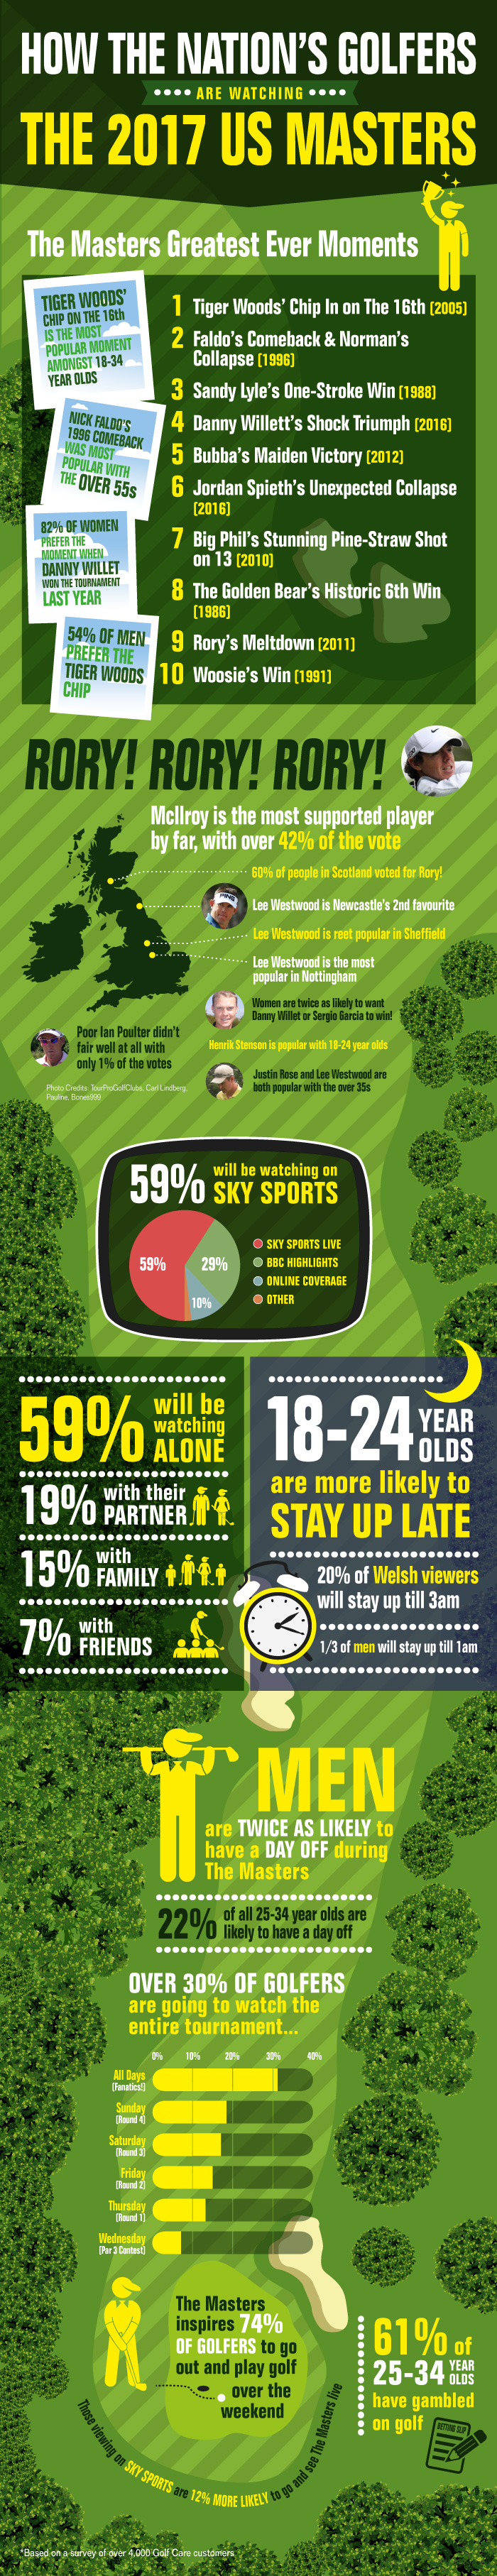 The Masters 2017 Survey Infographic